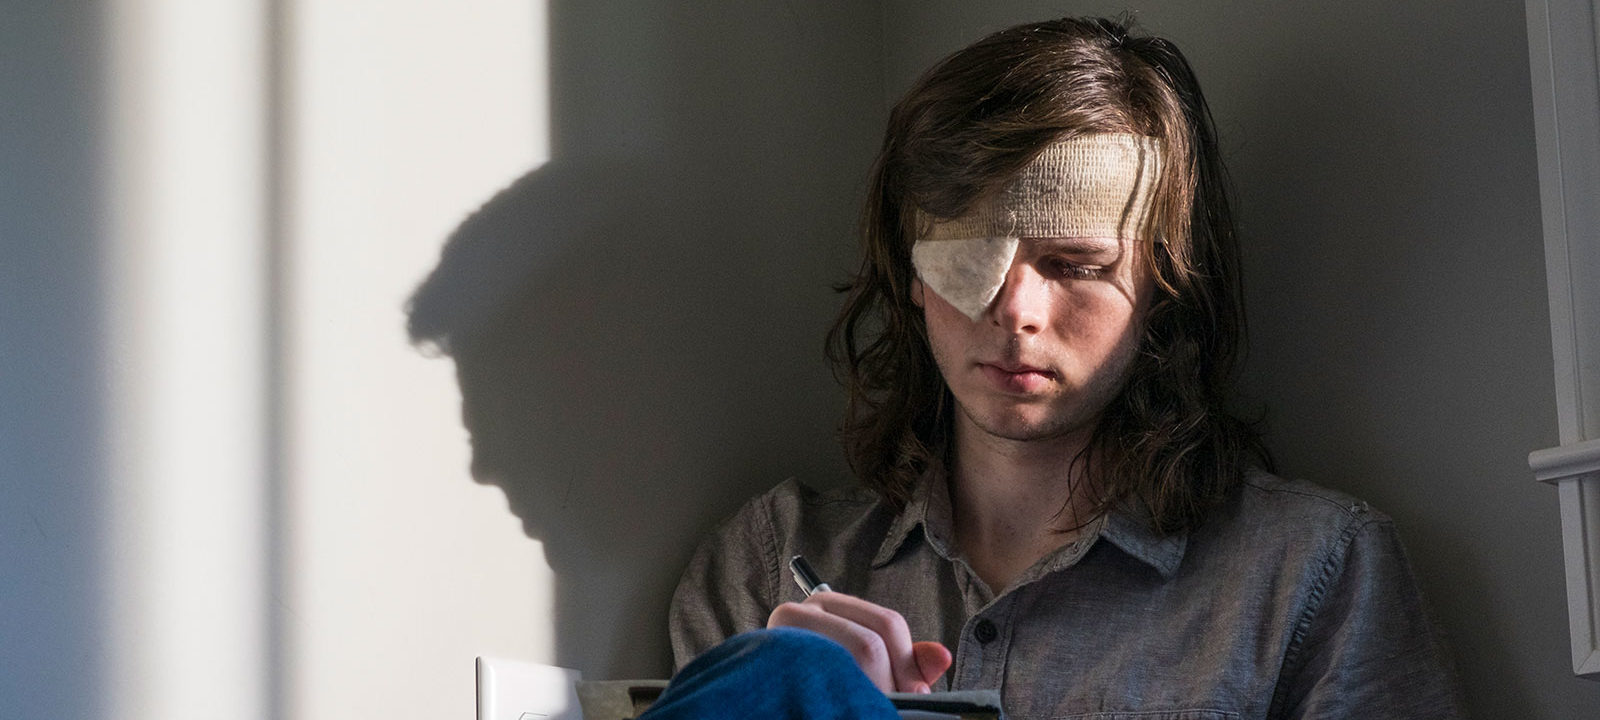 the-walking-dead-episode-809-carl-riggs-800×600-interview